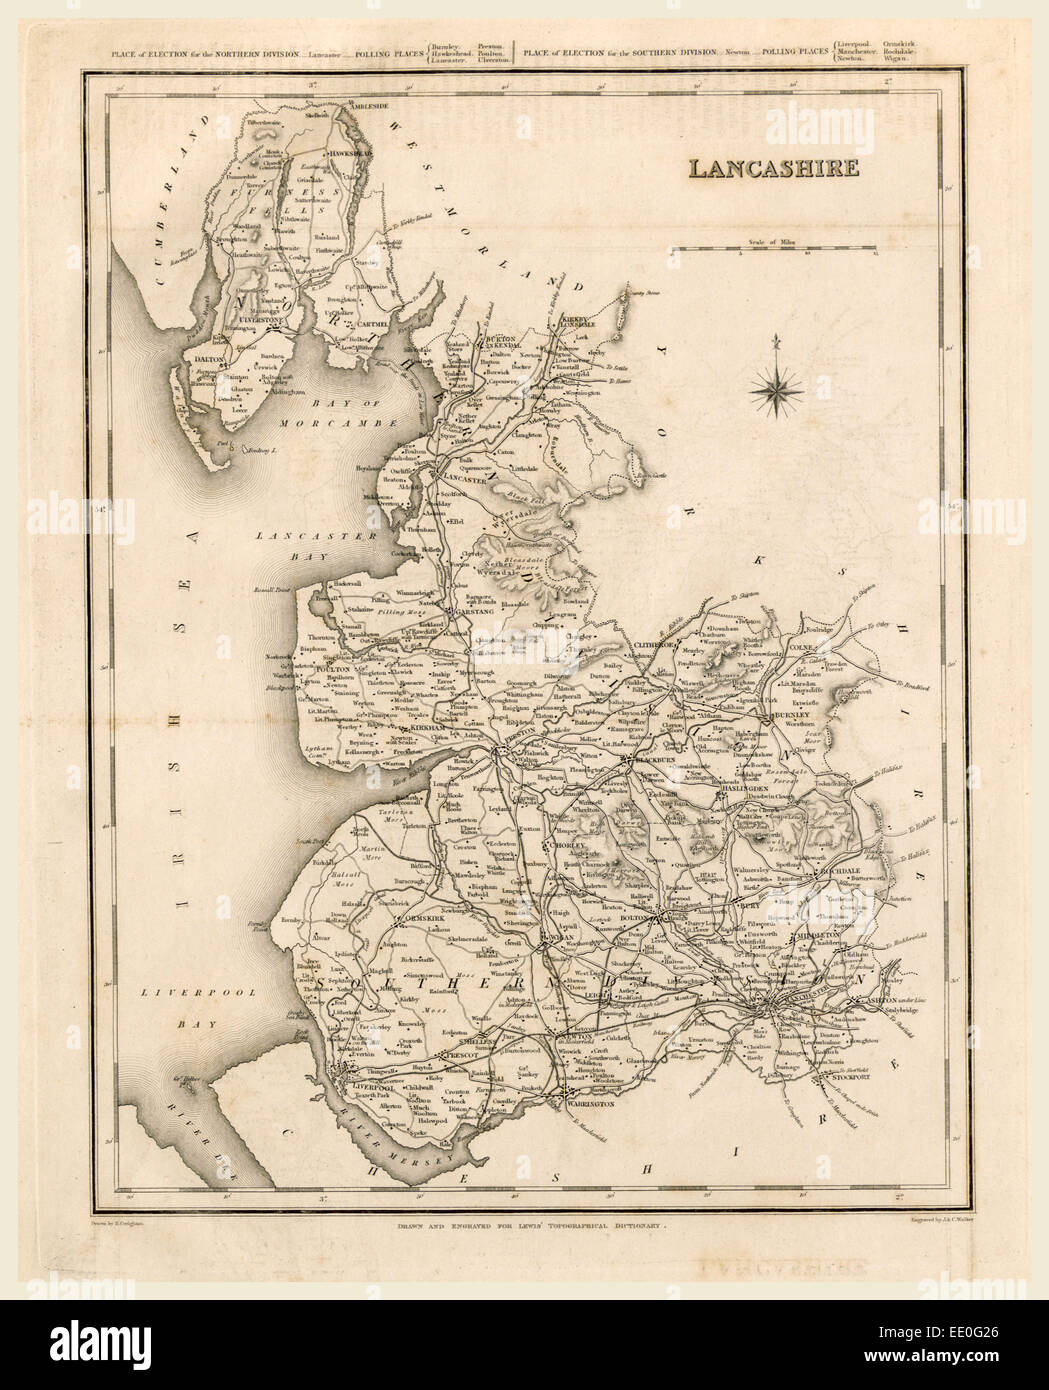 A Topographical Dictionary of England, Lancashire, map, 19th century engraving - Stock Image